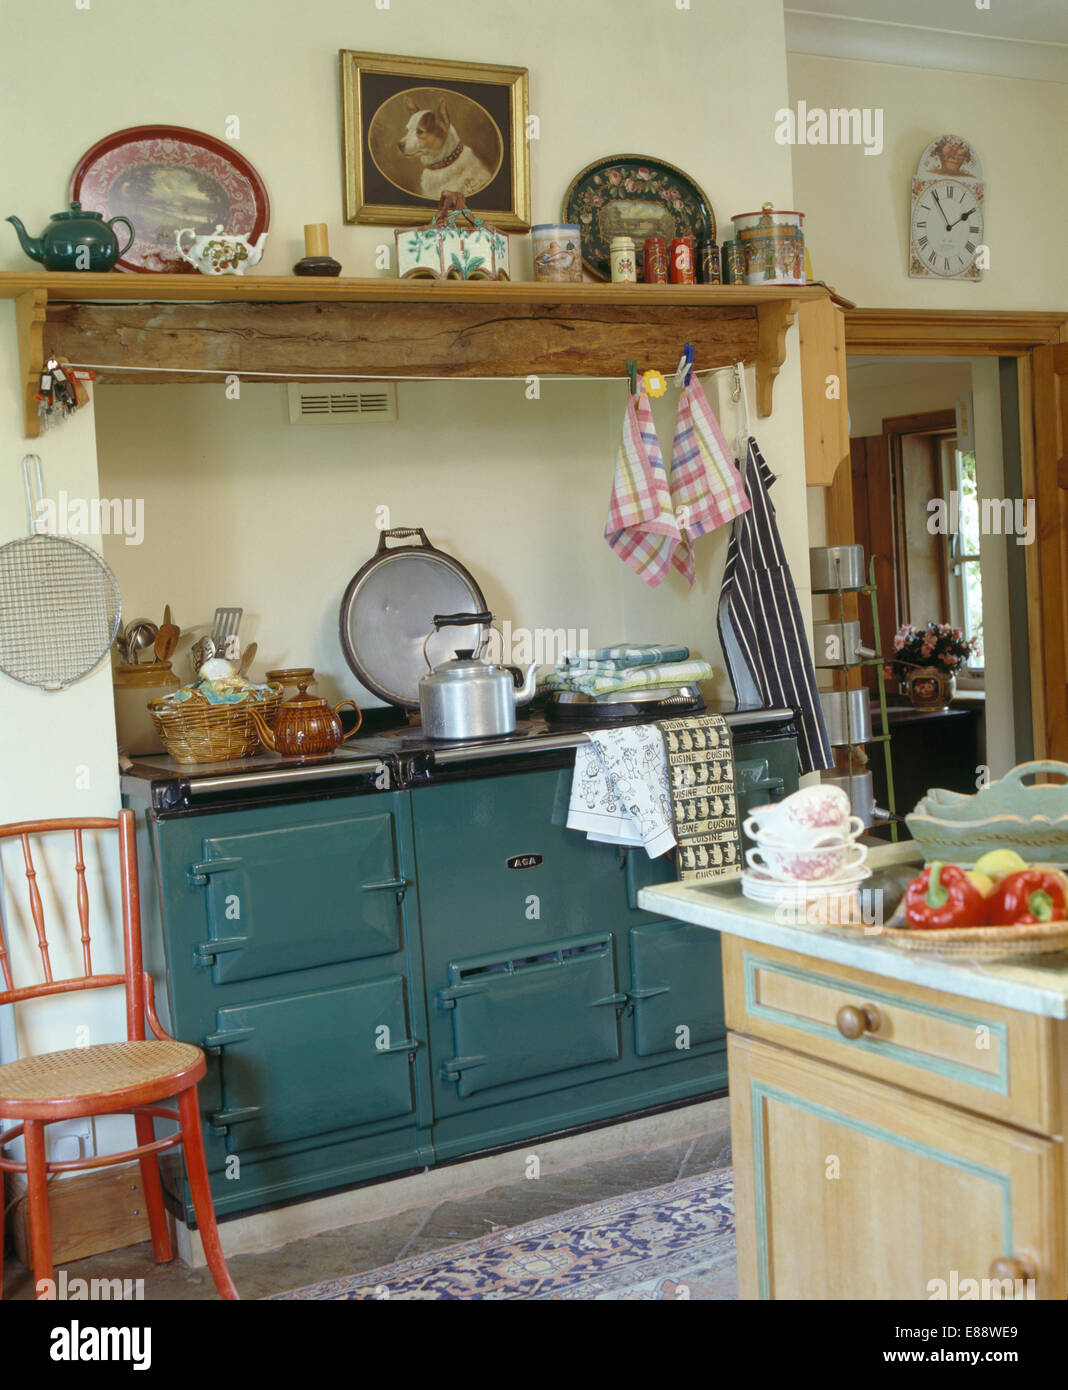 Green country kitchen - Stock Photo Wooden Shelf Above Green Aga In Traditional Country Kitchen